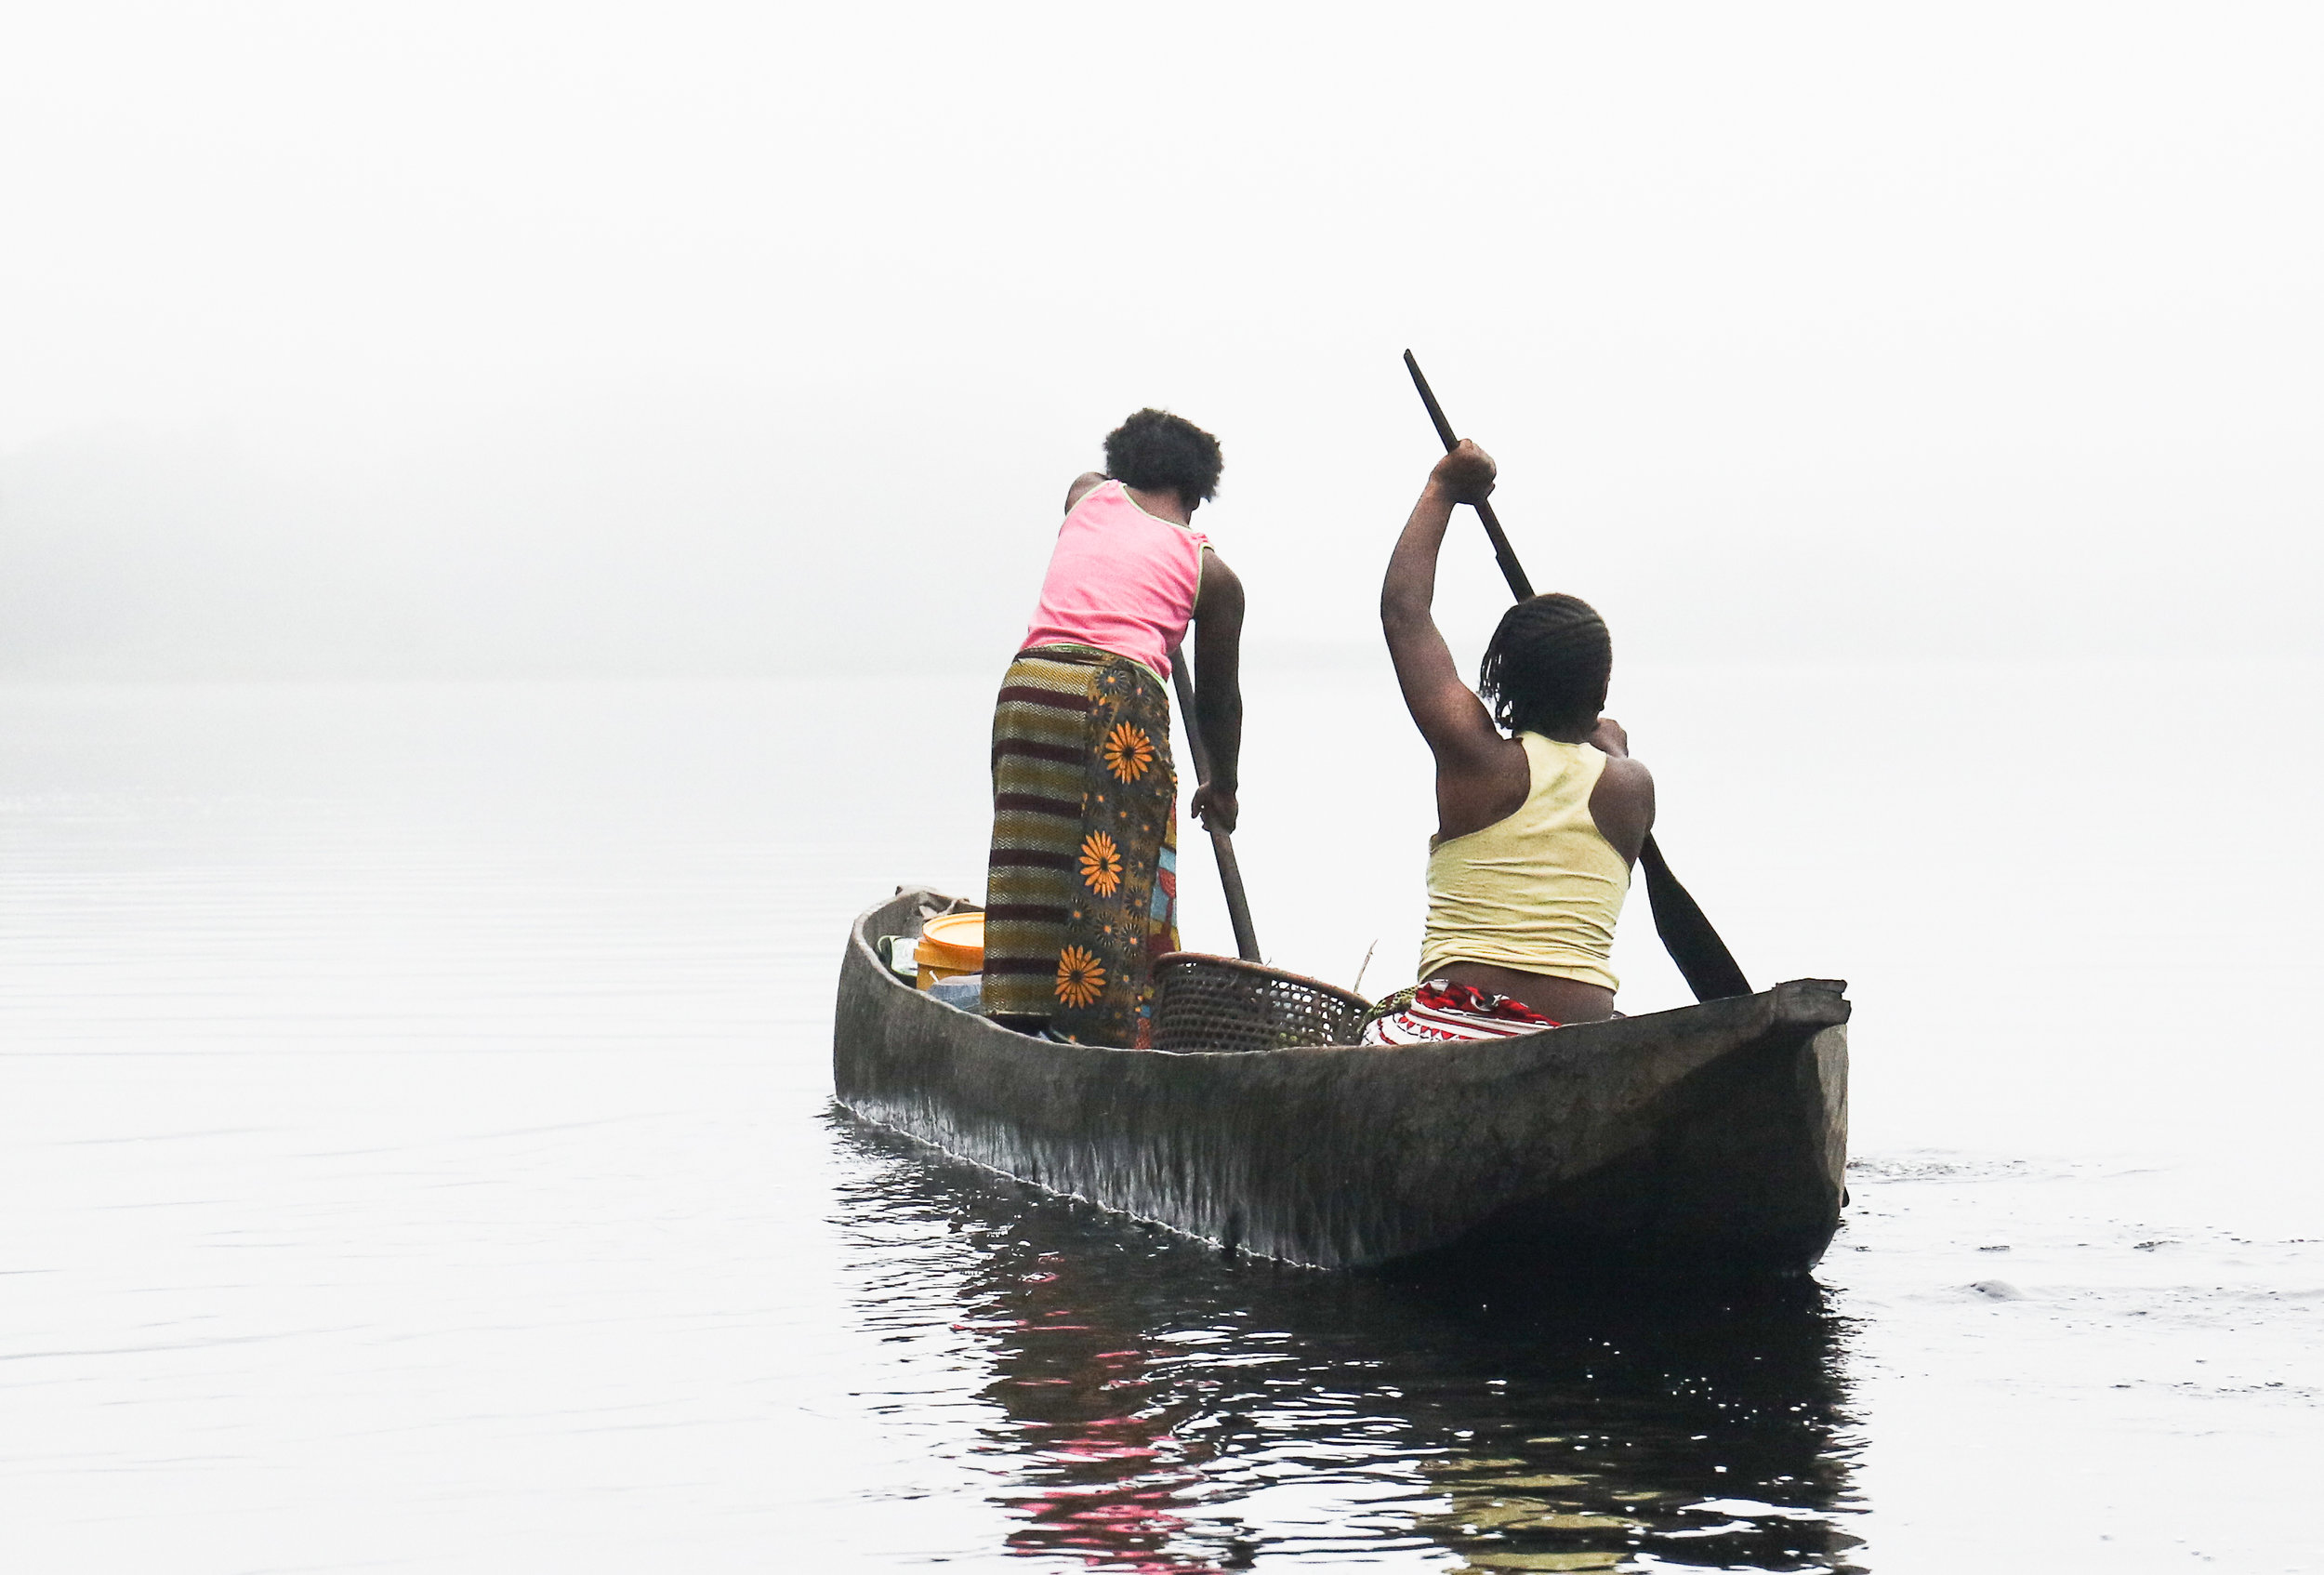 Two women fishing at dawn on the Lopori River in Equateur Province, DRC